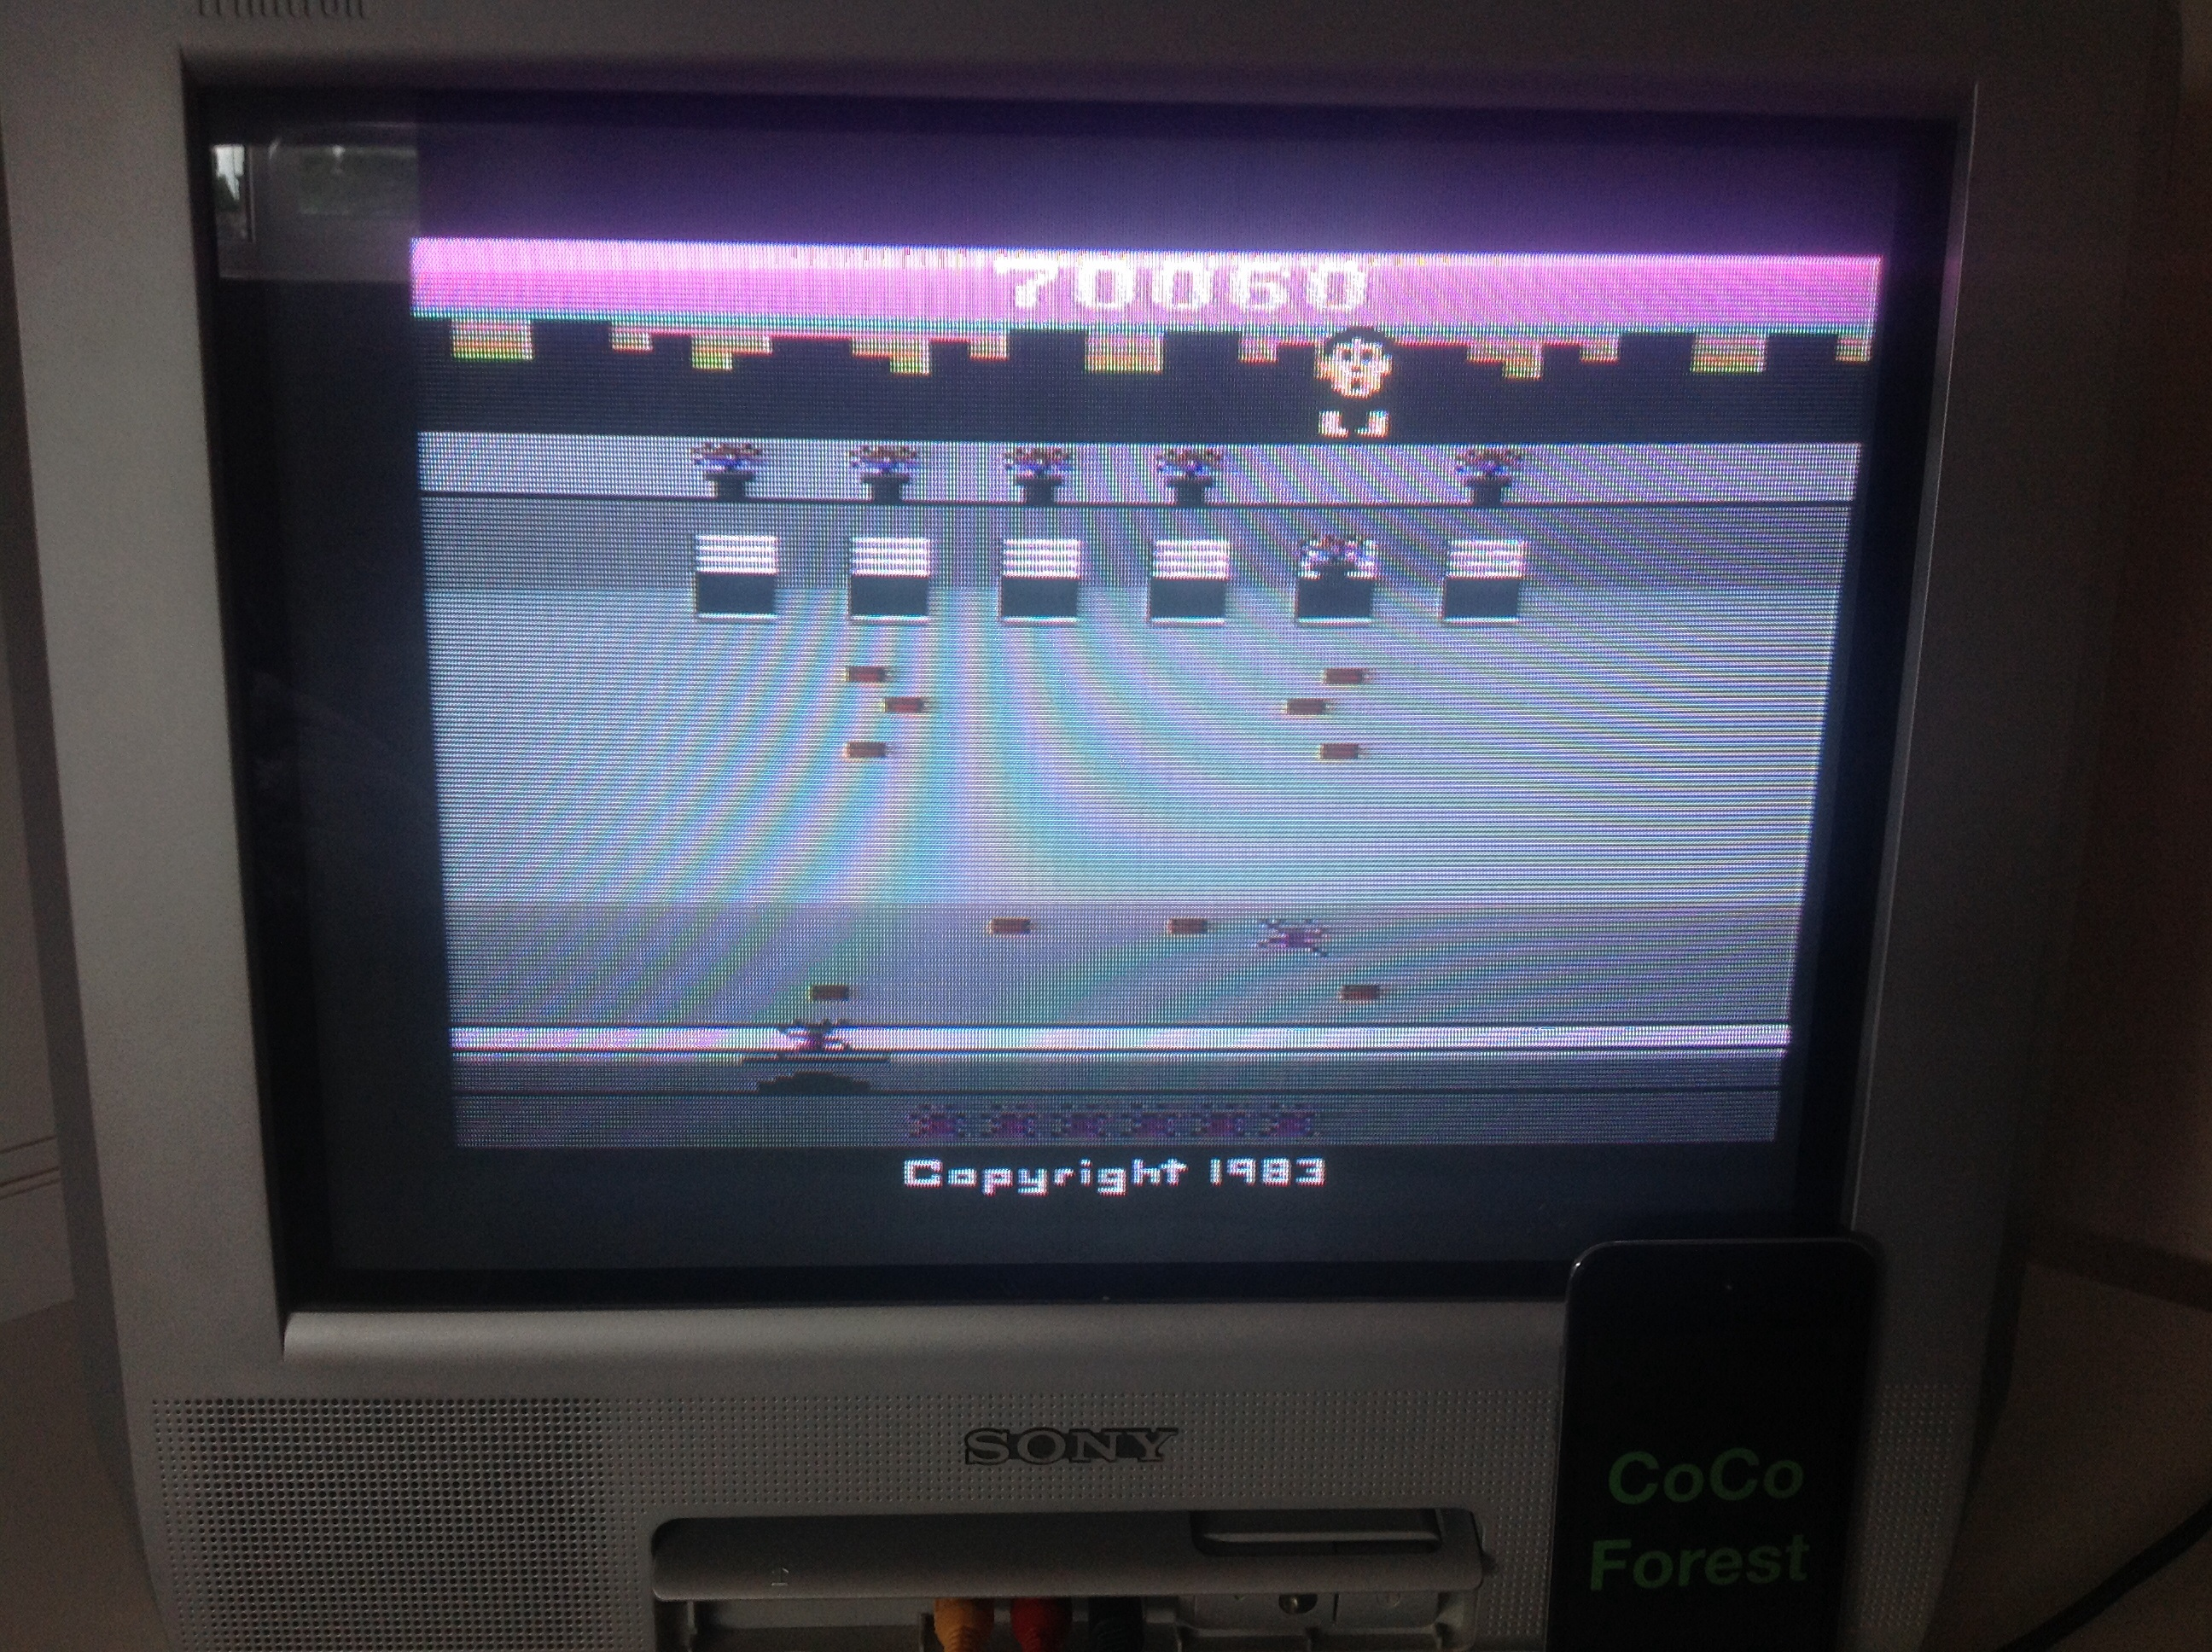 CoCoForest: Crackpots (Atari 2600) 70,060 points on 2014-05-22 08:14:16